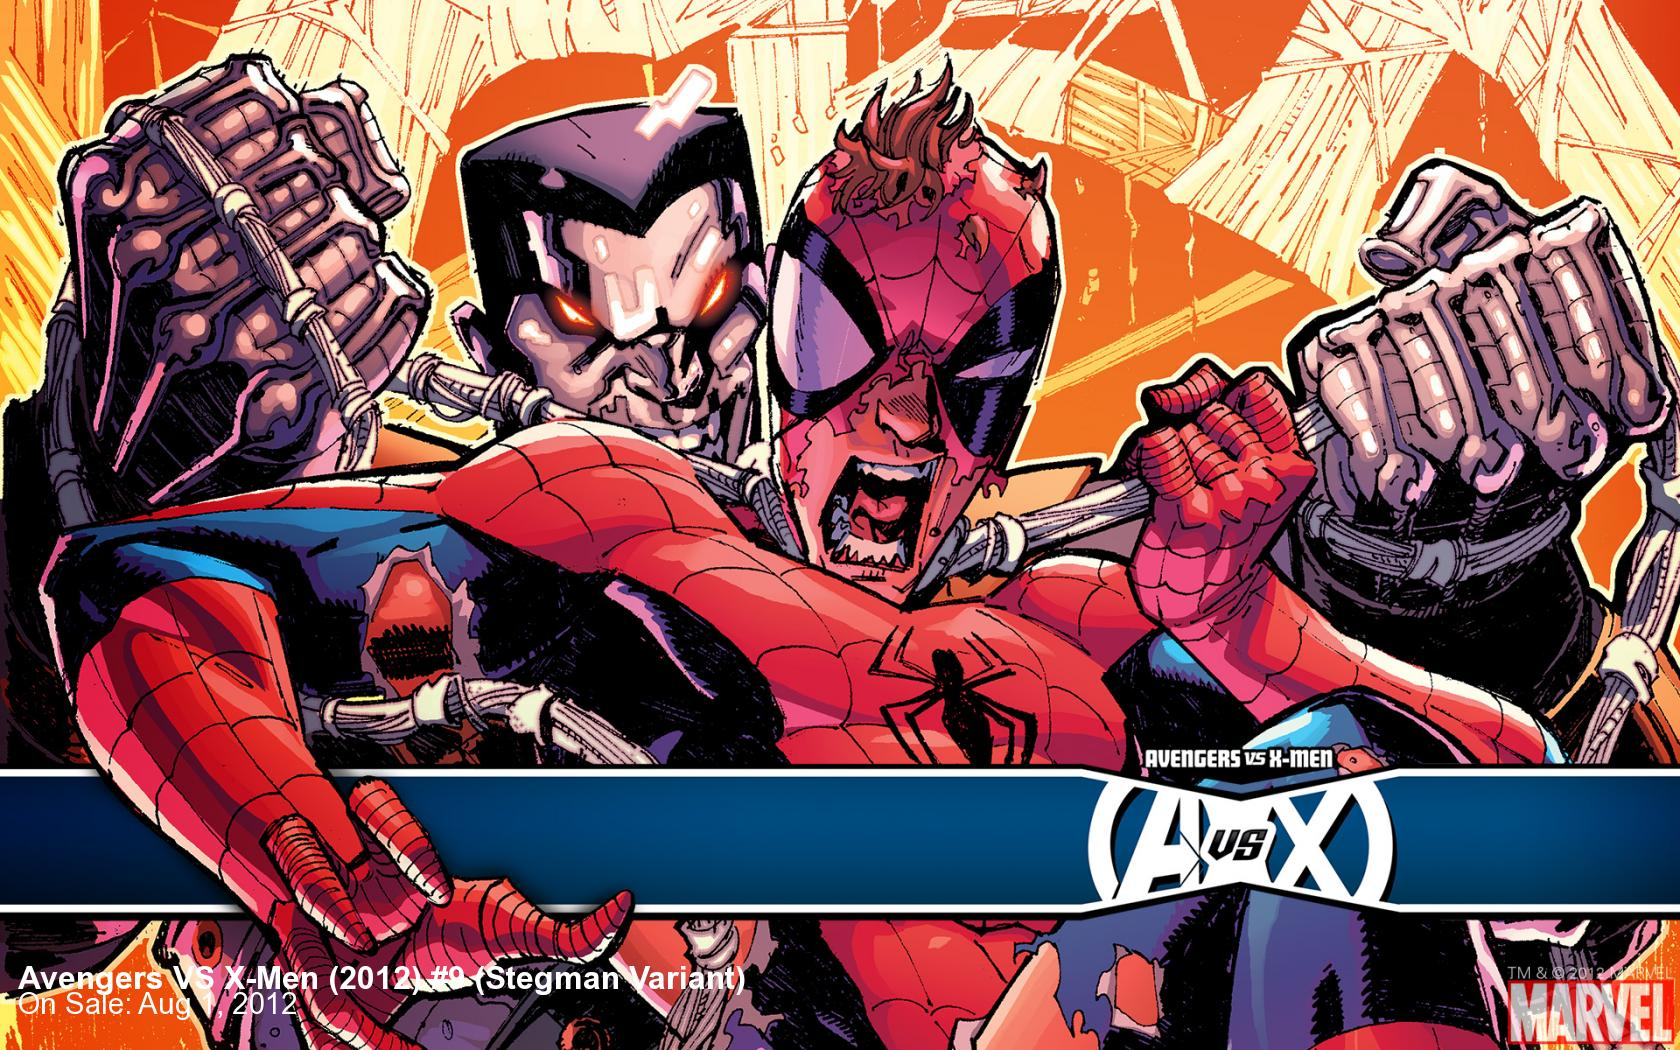 Avengers VS X-Men (2012) #9 (Stegman Variant)